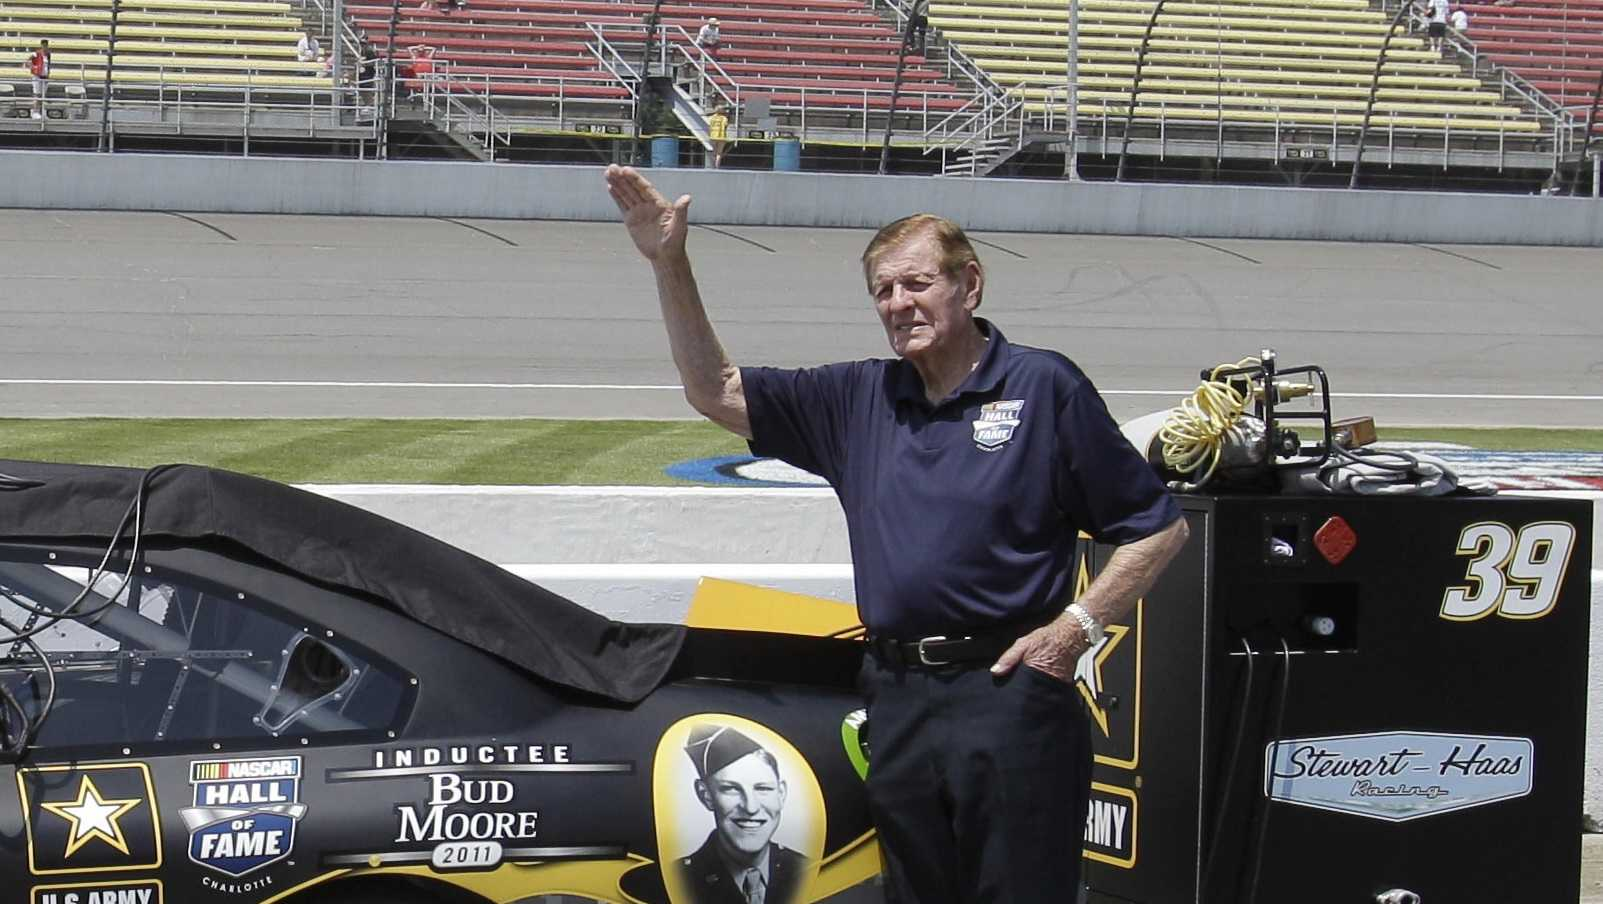 In this June 18, 2011, file photo, NASCAR Hall of Famer Bud Moore stands next to Ryan Newman's car before qualifying laps for a NASCAR Sprint Cup Series auto race at Michigan International Speedway in Brooklyn, Mich. NASCAR Hall of Famer Bud Moore, a World War II veteran awarded five Purple Hearts and two Bronze Stars, has died. He was 92.